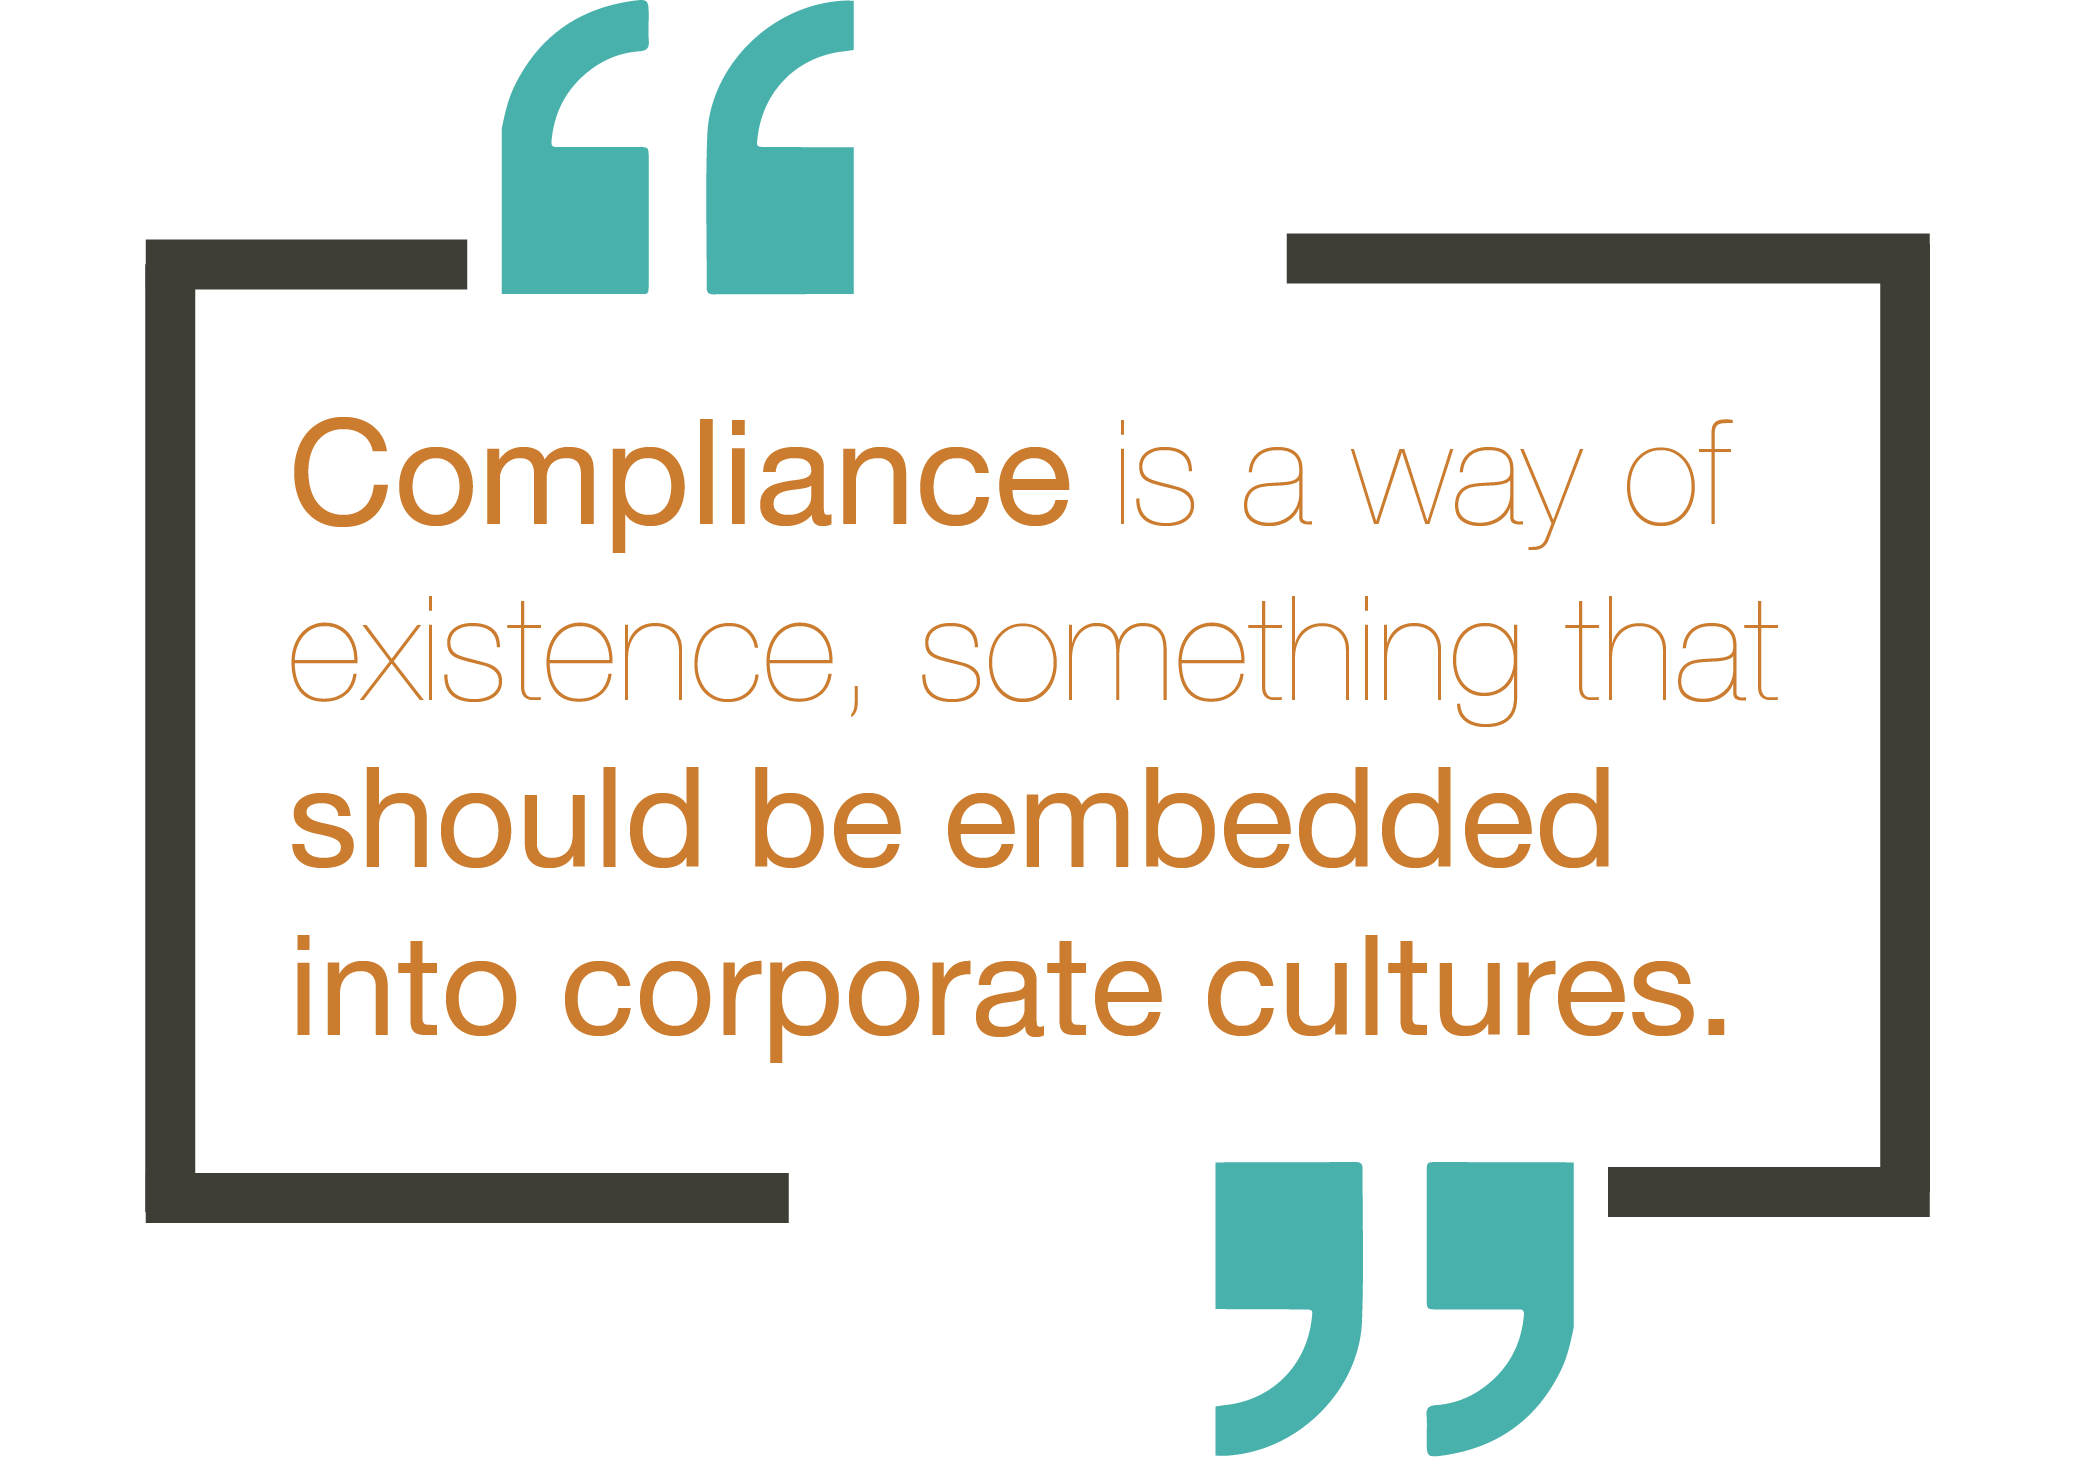 Compliance is a way of existence